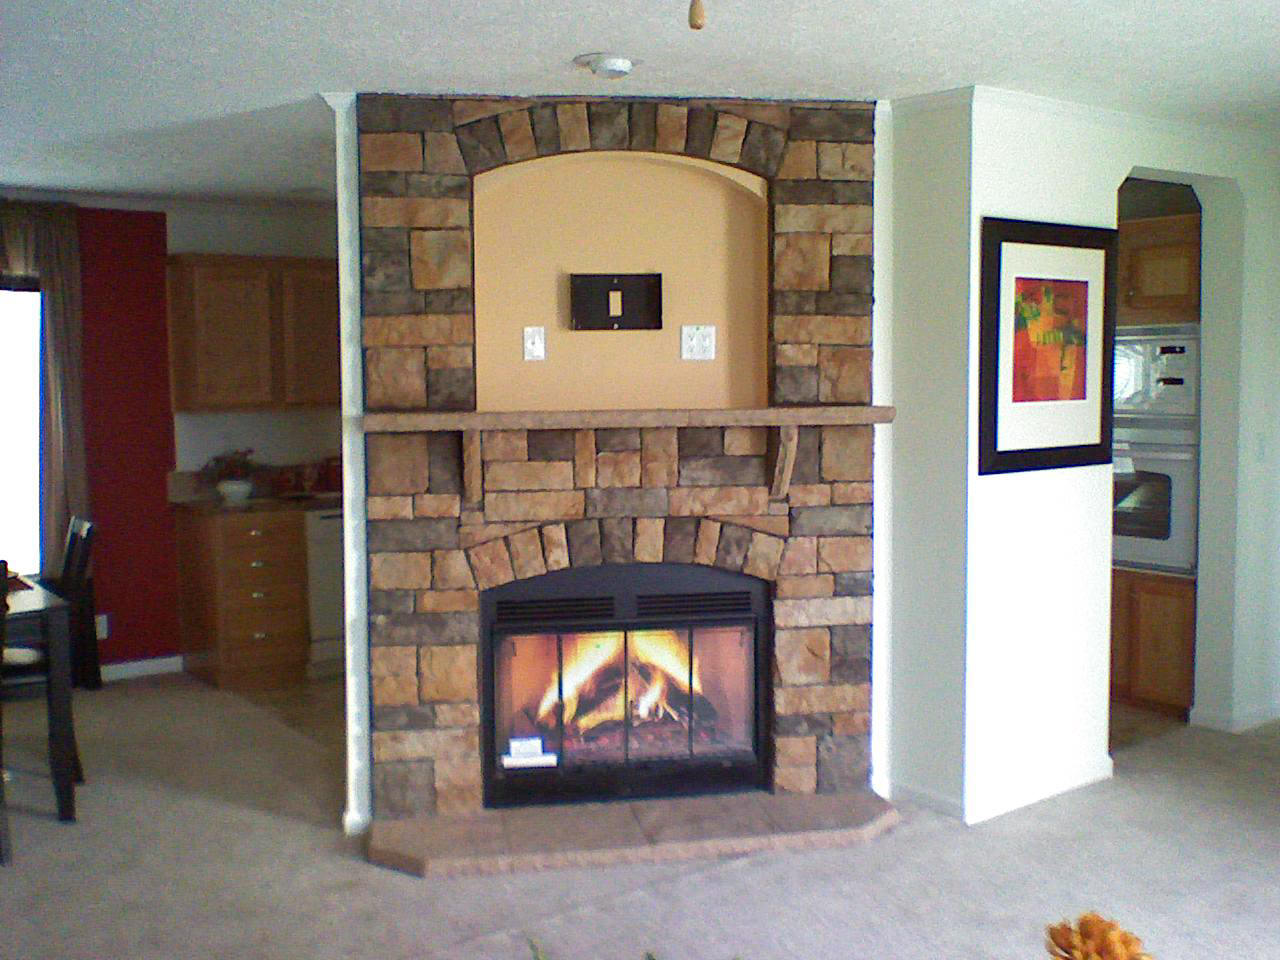 Sierra Fieldstone W / UPPER TV SURR. STONE MANTLE, FLAT